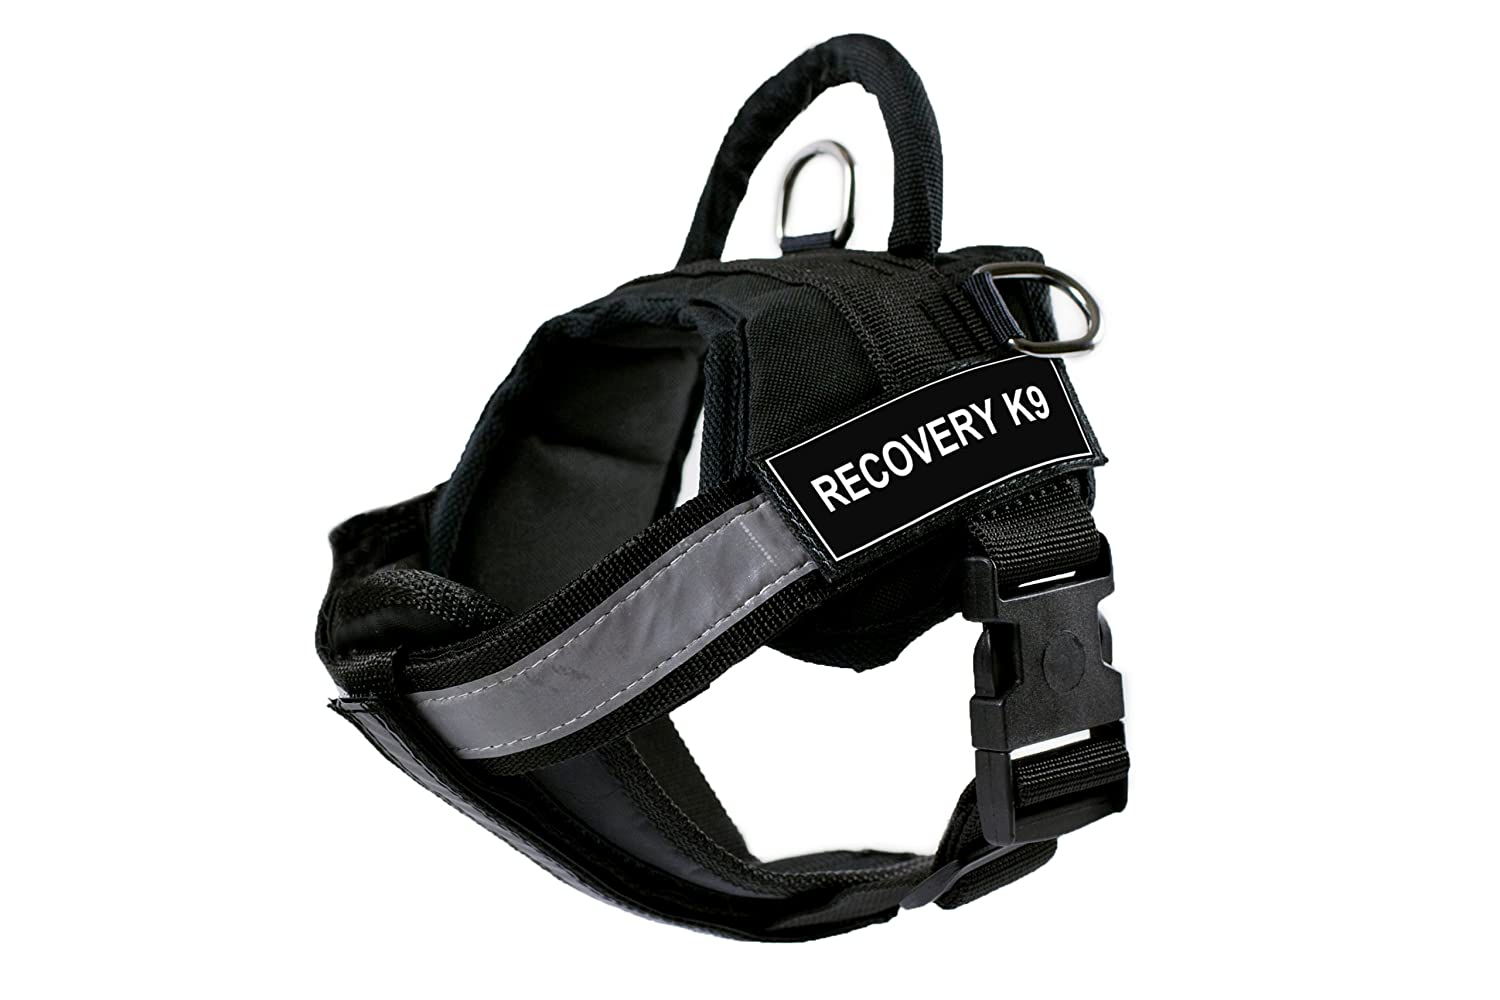 DT Works Harness with Padded Reflective Chest Straps, Recovery K9, Black, Small, Fits Girth Size  25-Inch to 34-Inch